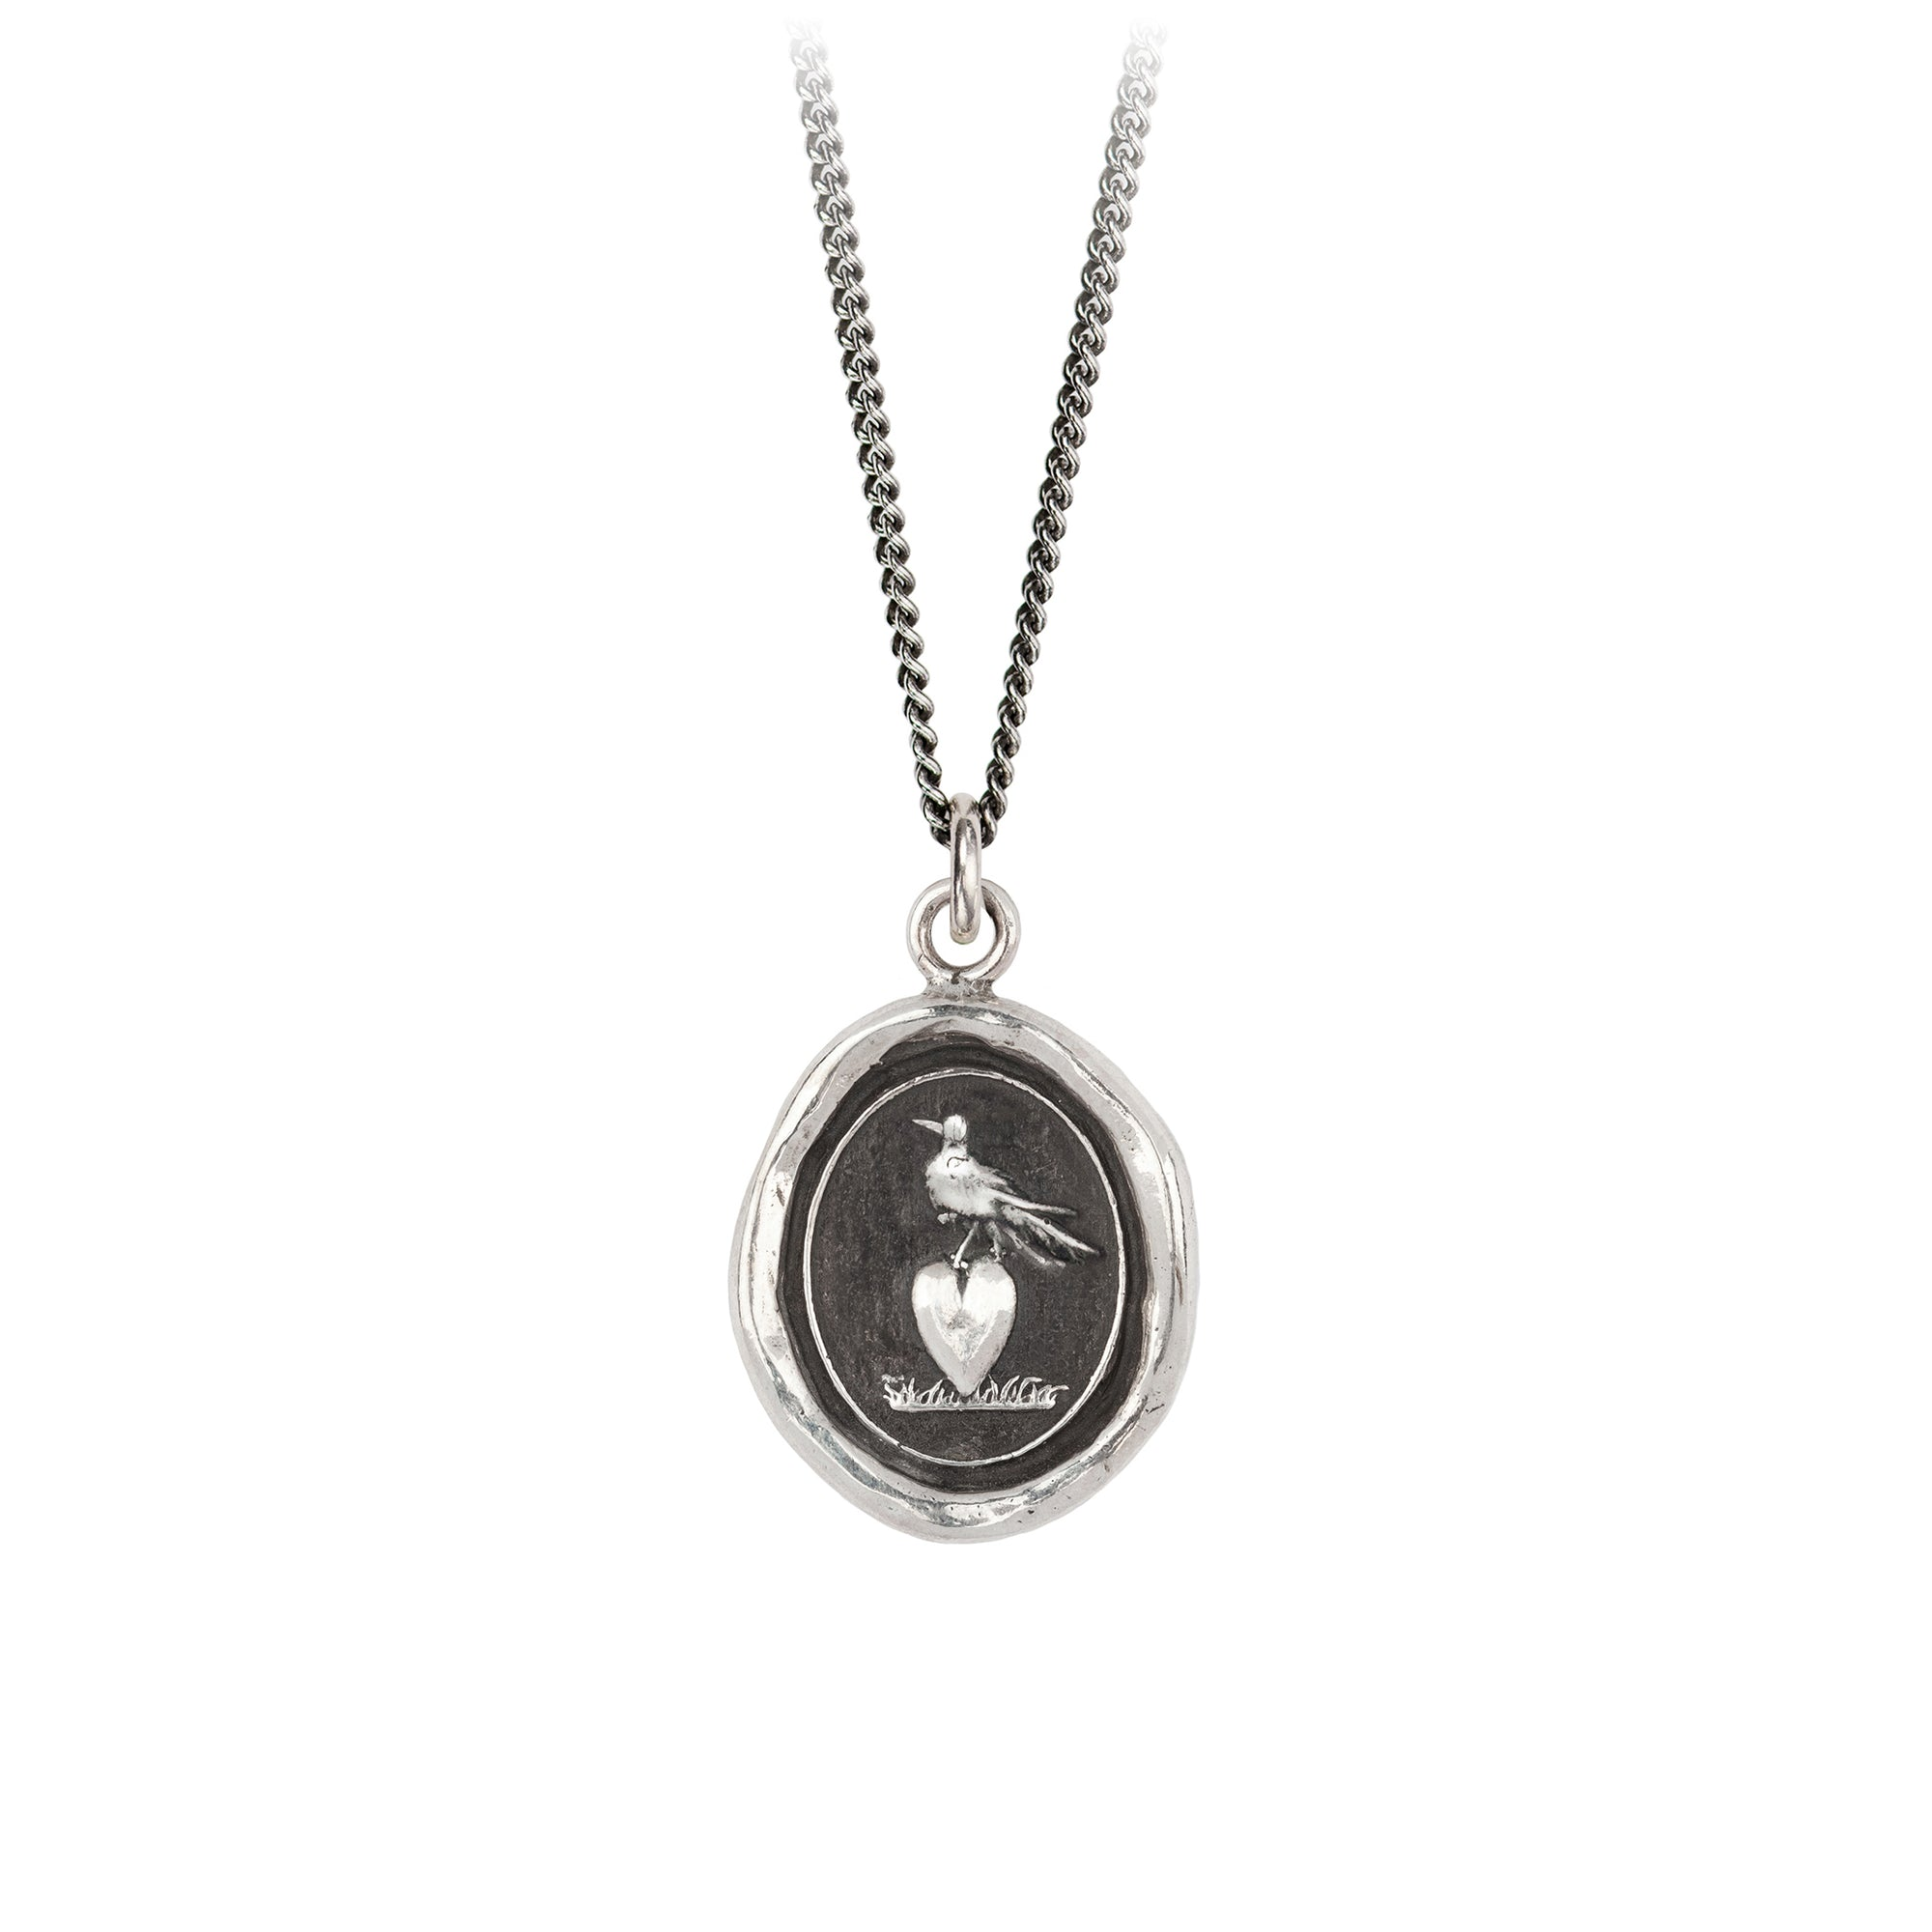 Pyrrha Martlet and Heart Talisman Necklace Fine Curb Chain Silver